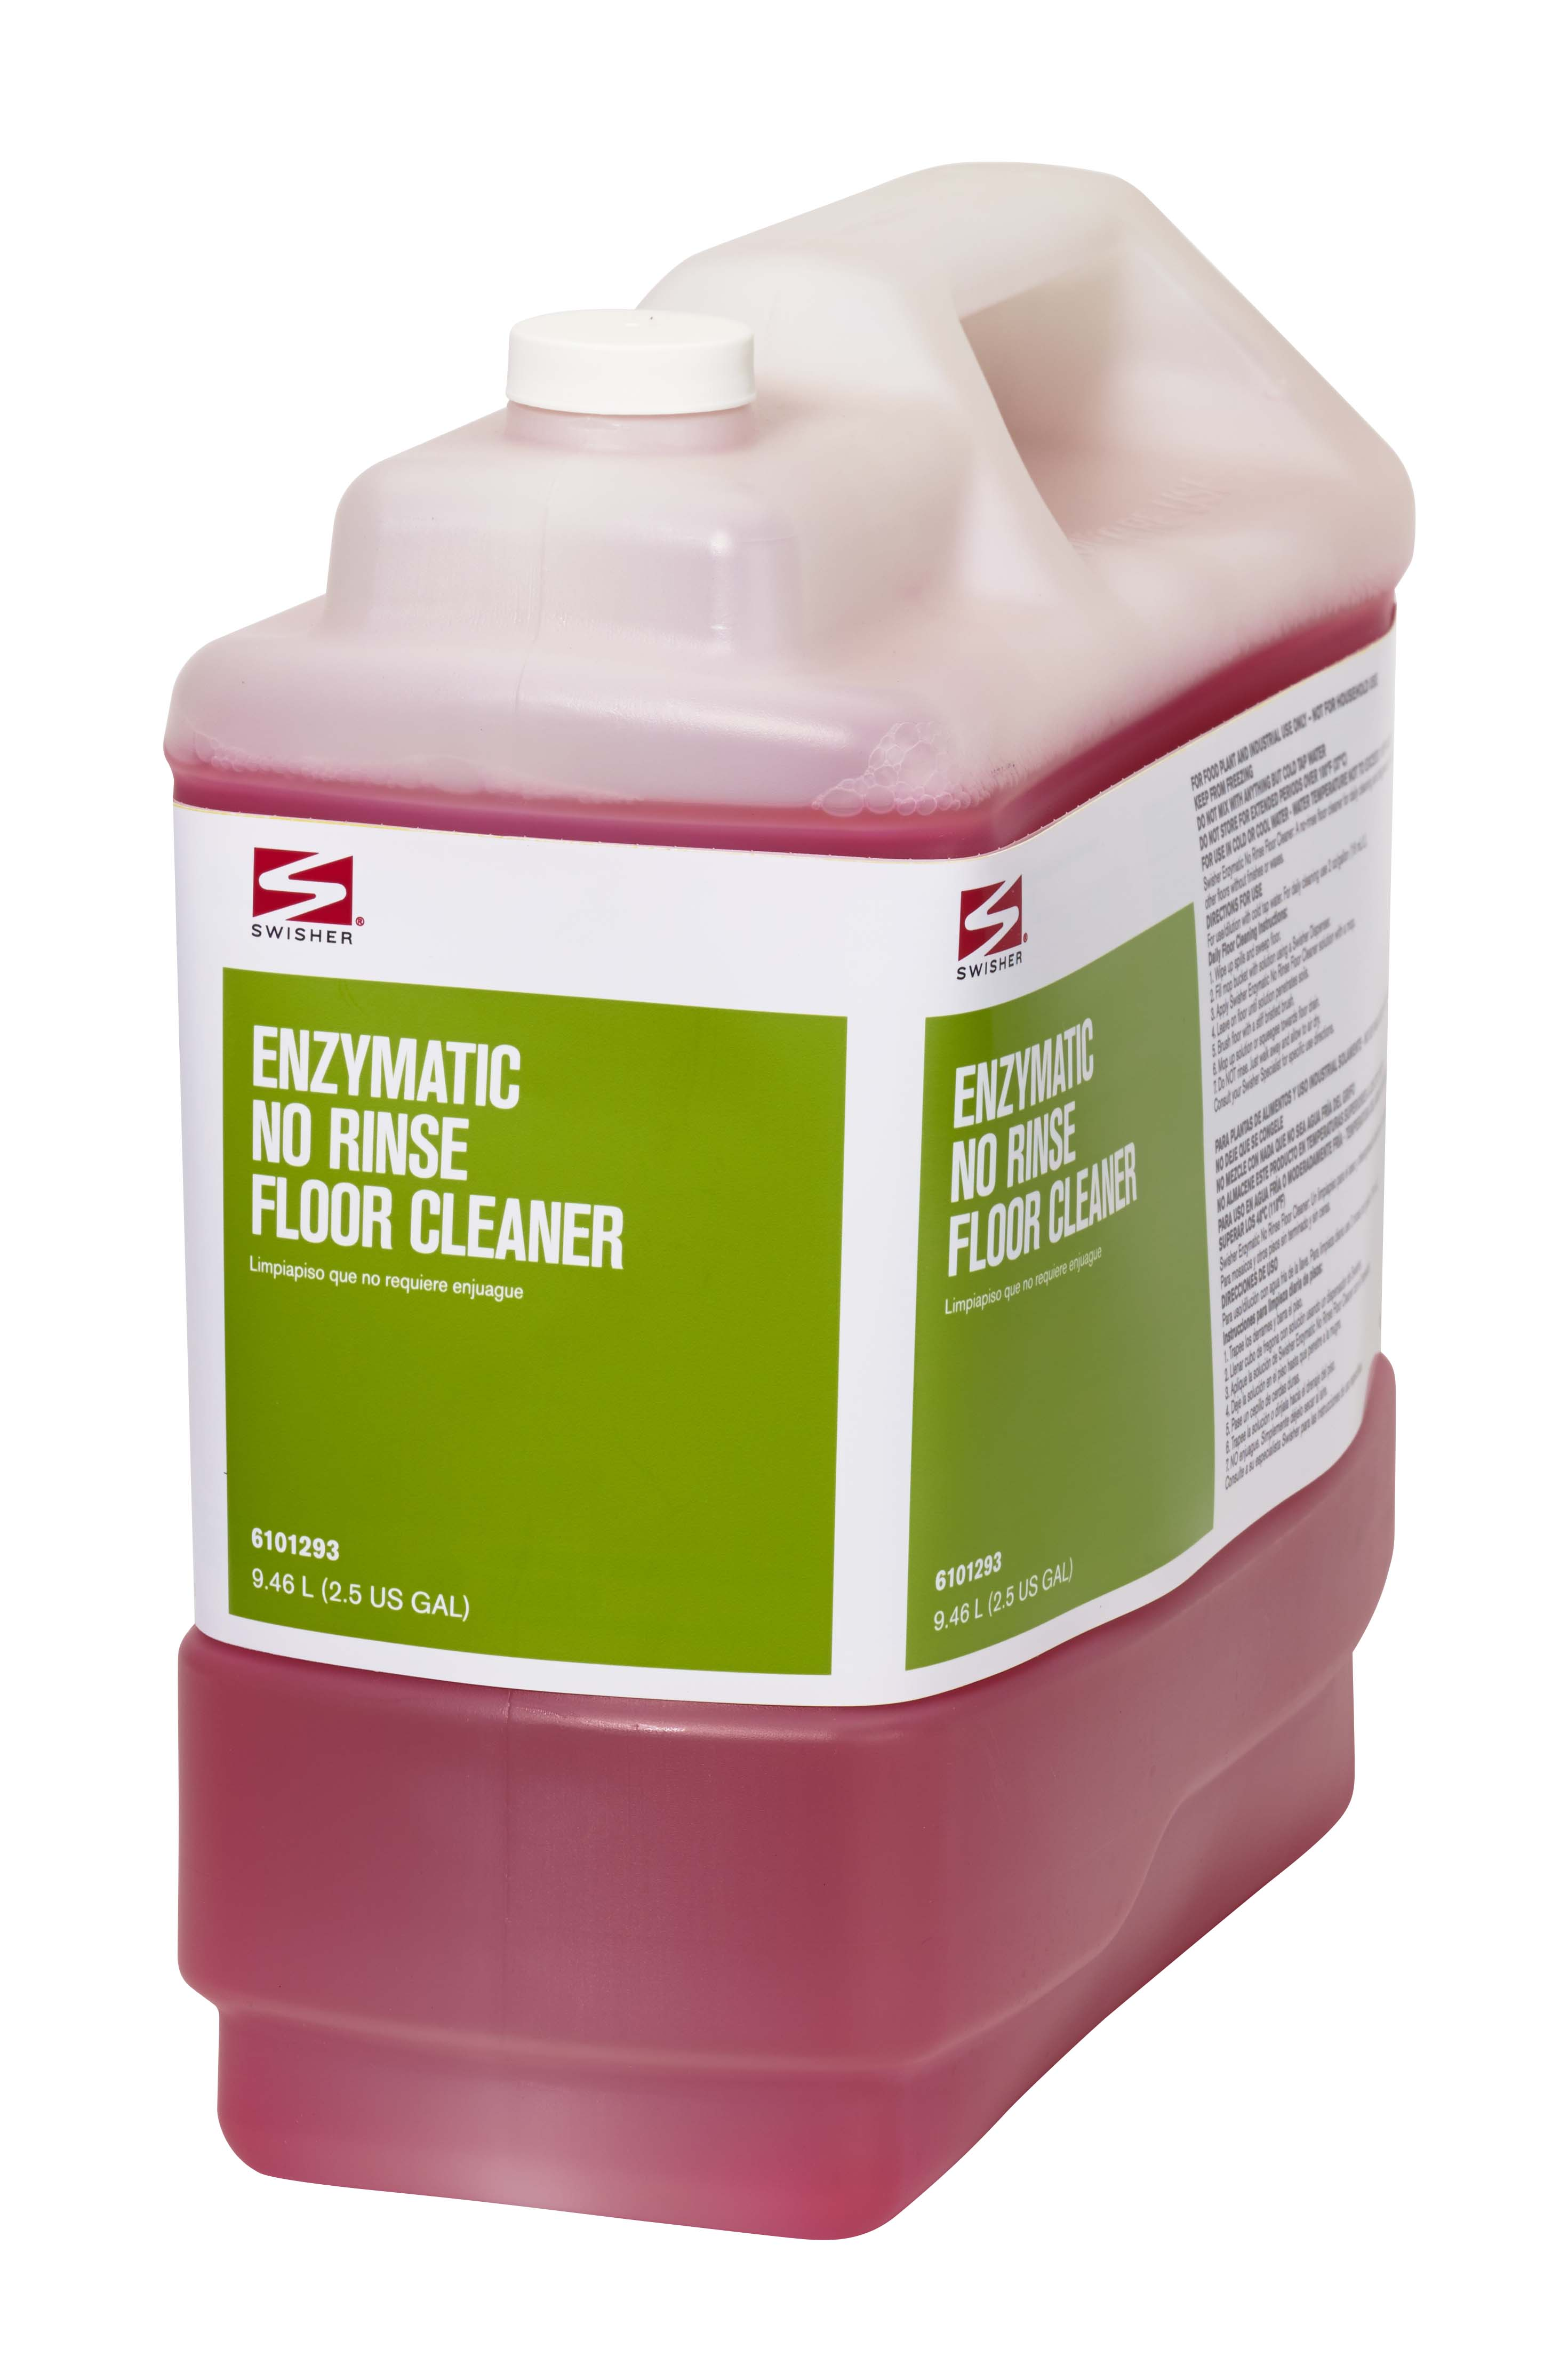 Swisher Enzymatic No Rinse Floor Cleaner